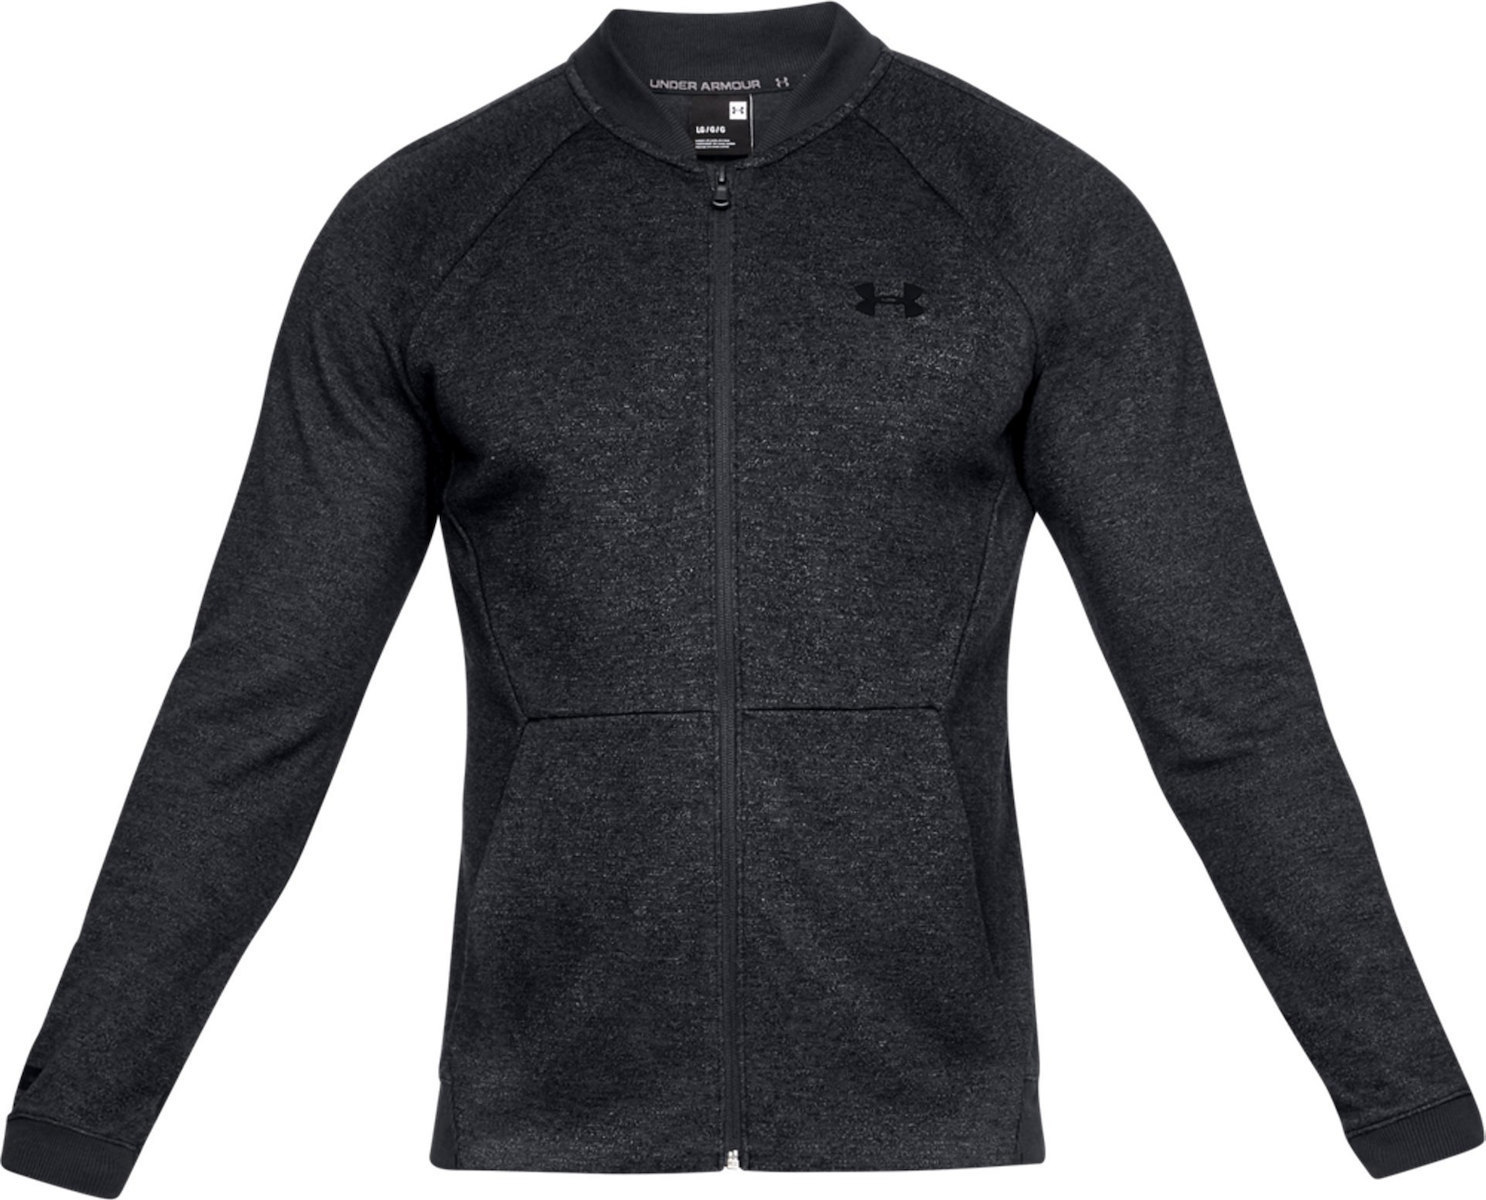 4ede57bc1be0 Under Armour Unstoppable 2X Bomber Jacket 1320723-001 - Skroutz.gr